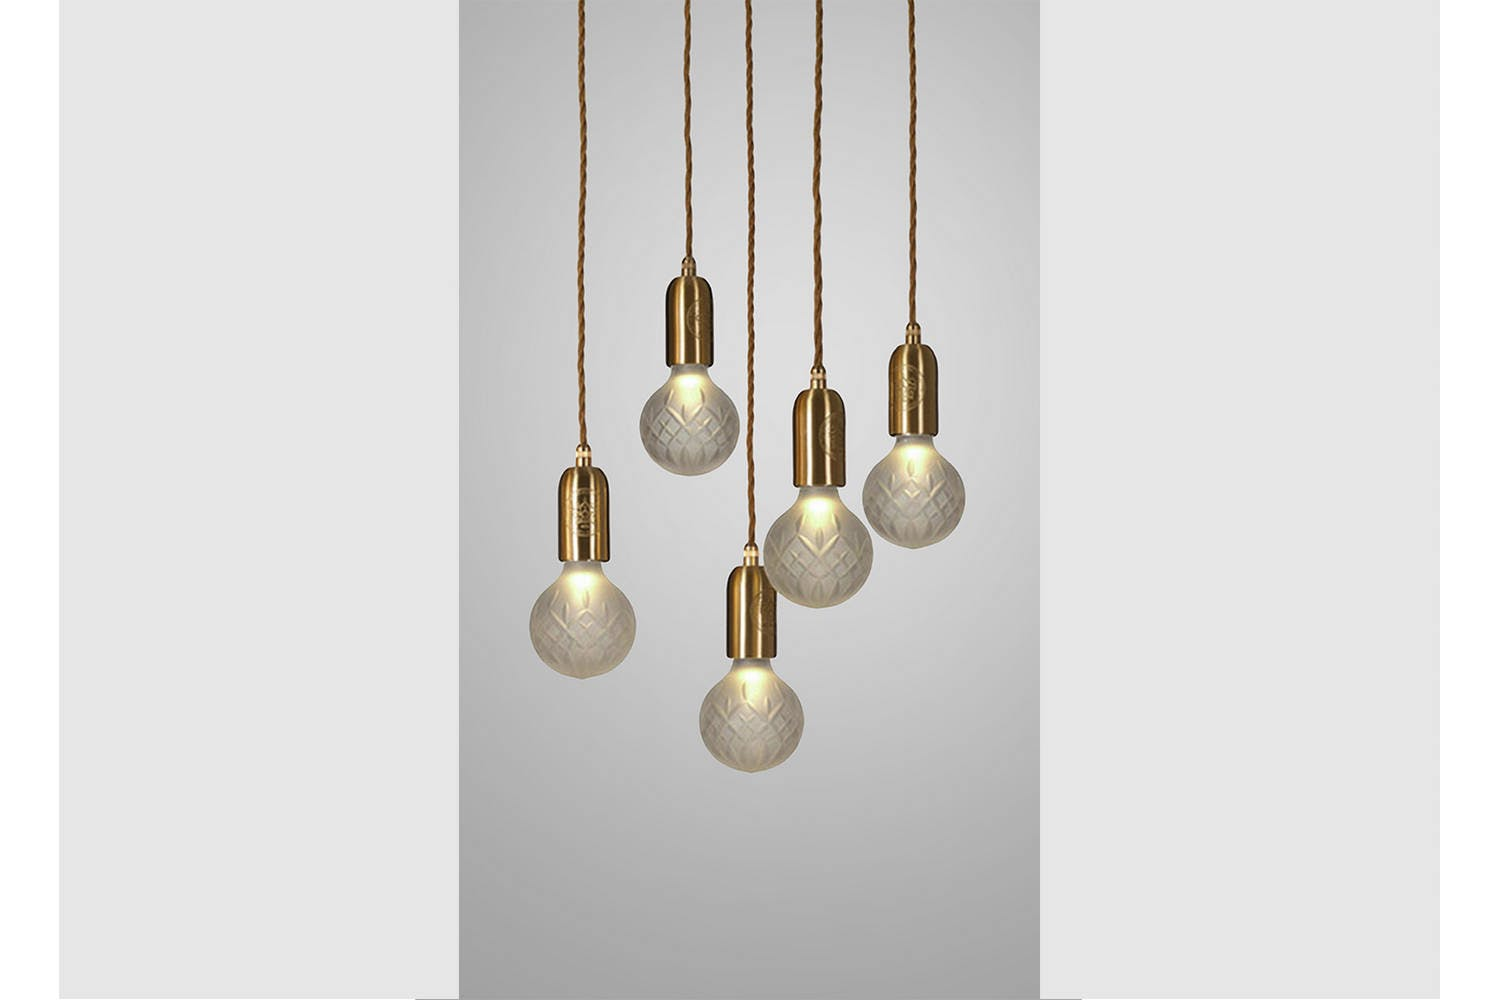 Frosted Crystal Bulb Chandelier 5 Piece Brushed Brass By Lee Broom